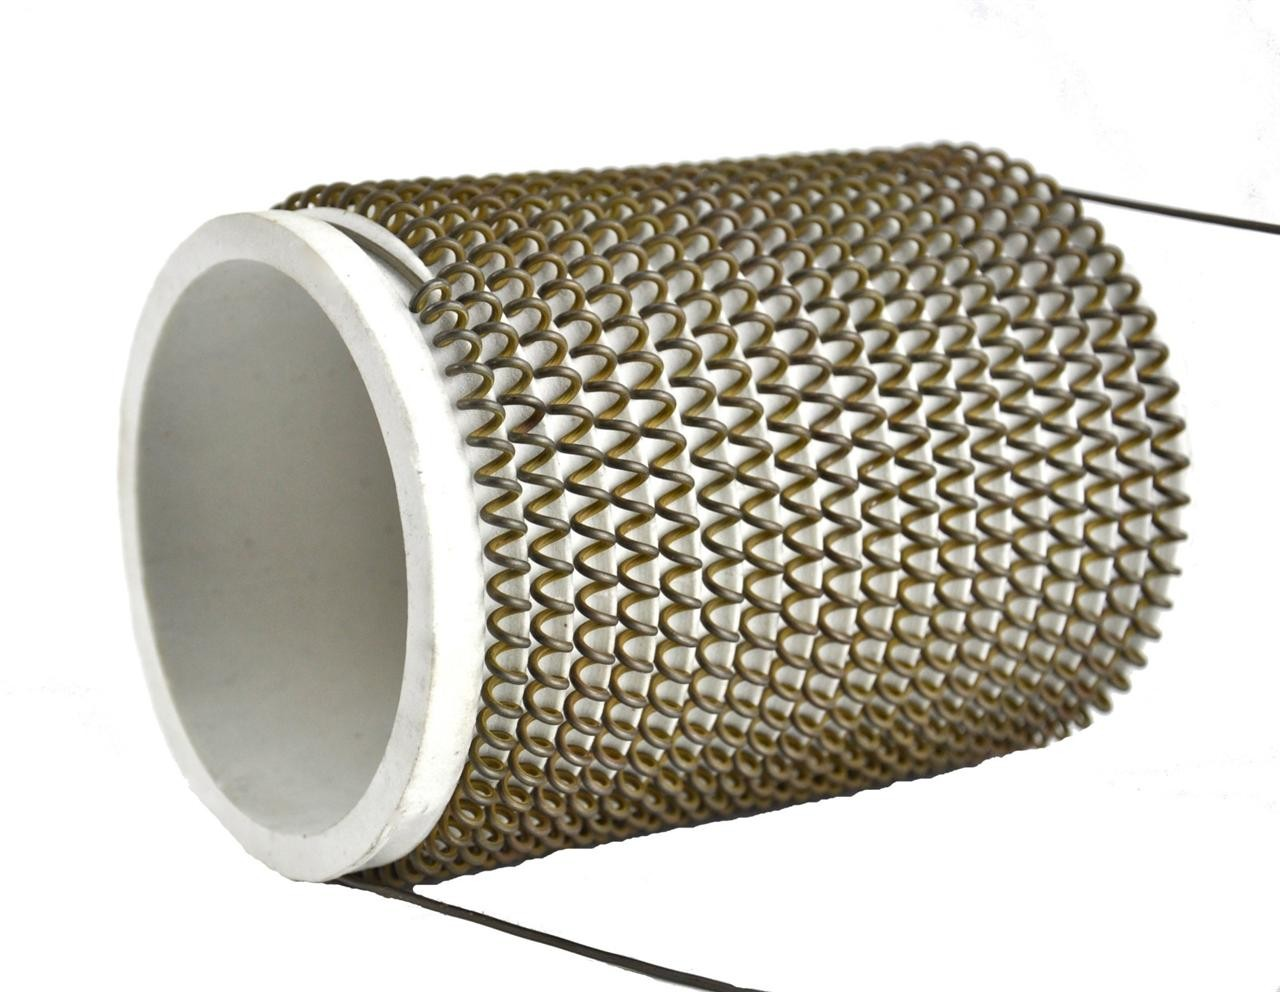 Replacement Coil For Boiler ~ Auto melting furnace kiln ceramic chamber and v heating